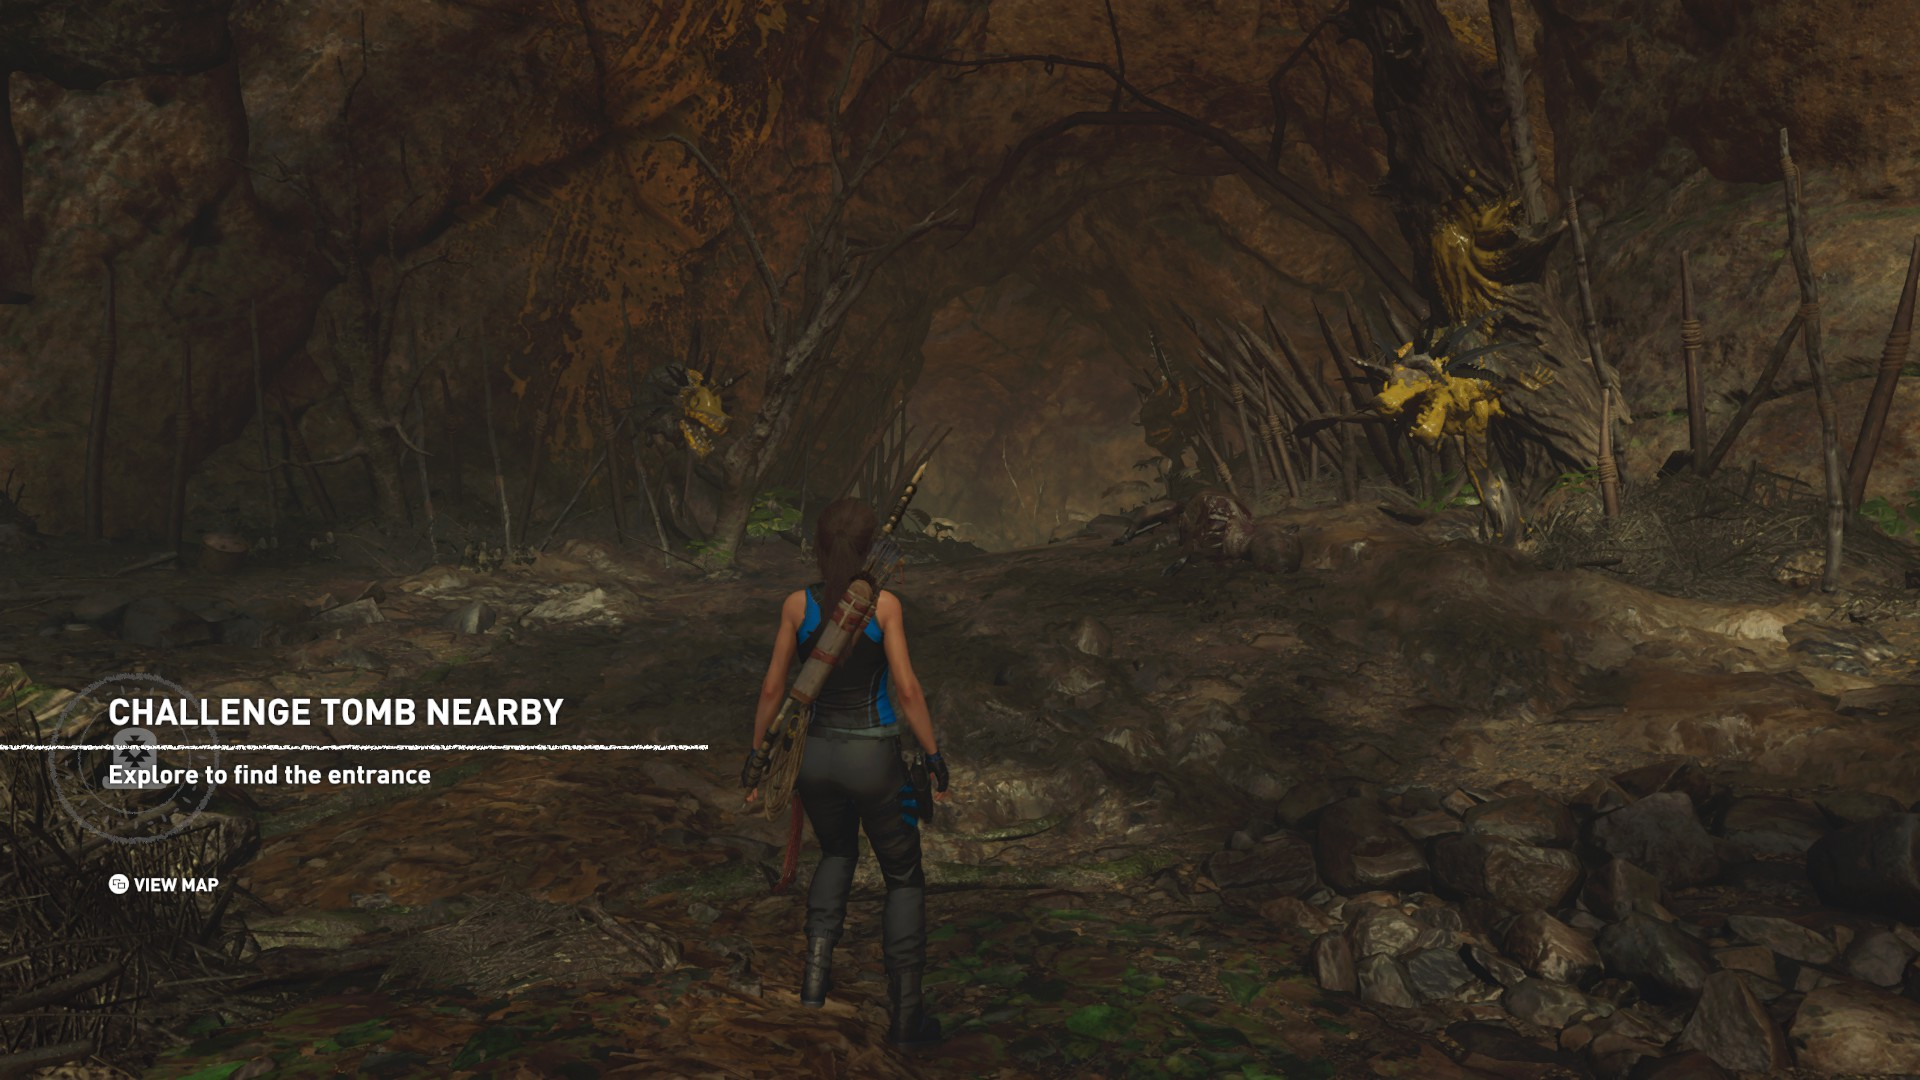 Lara outside Howling Caves challenge tomb.